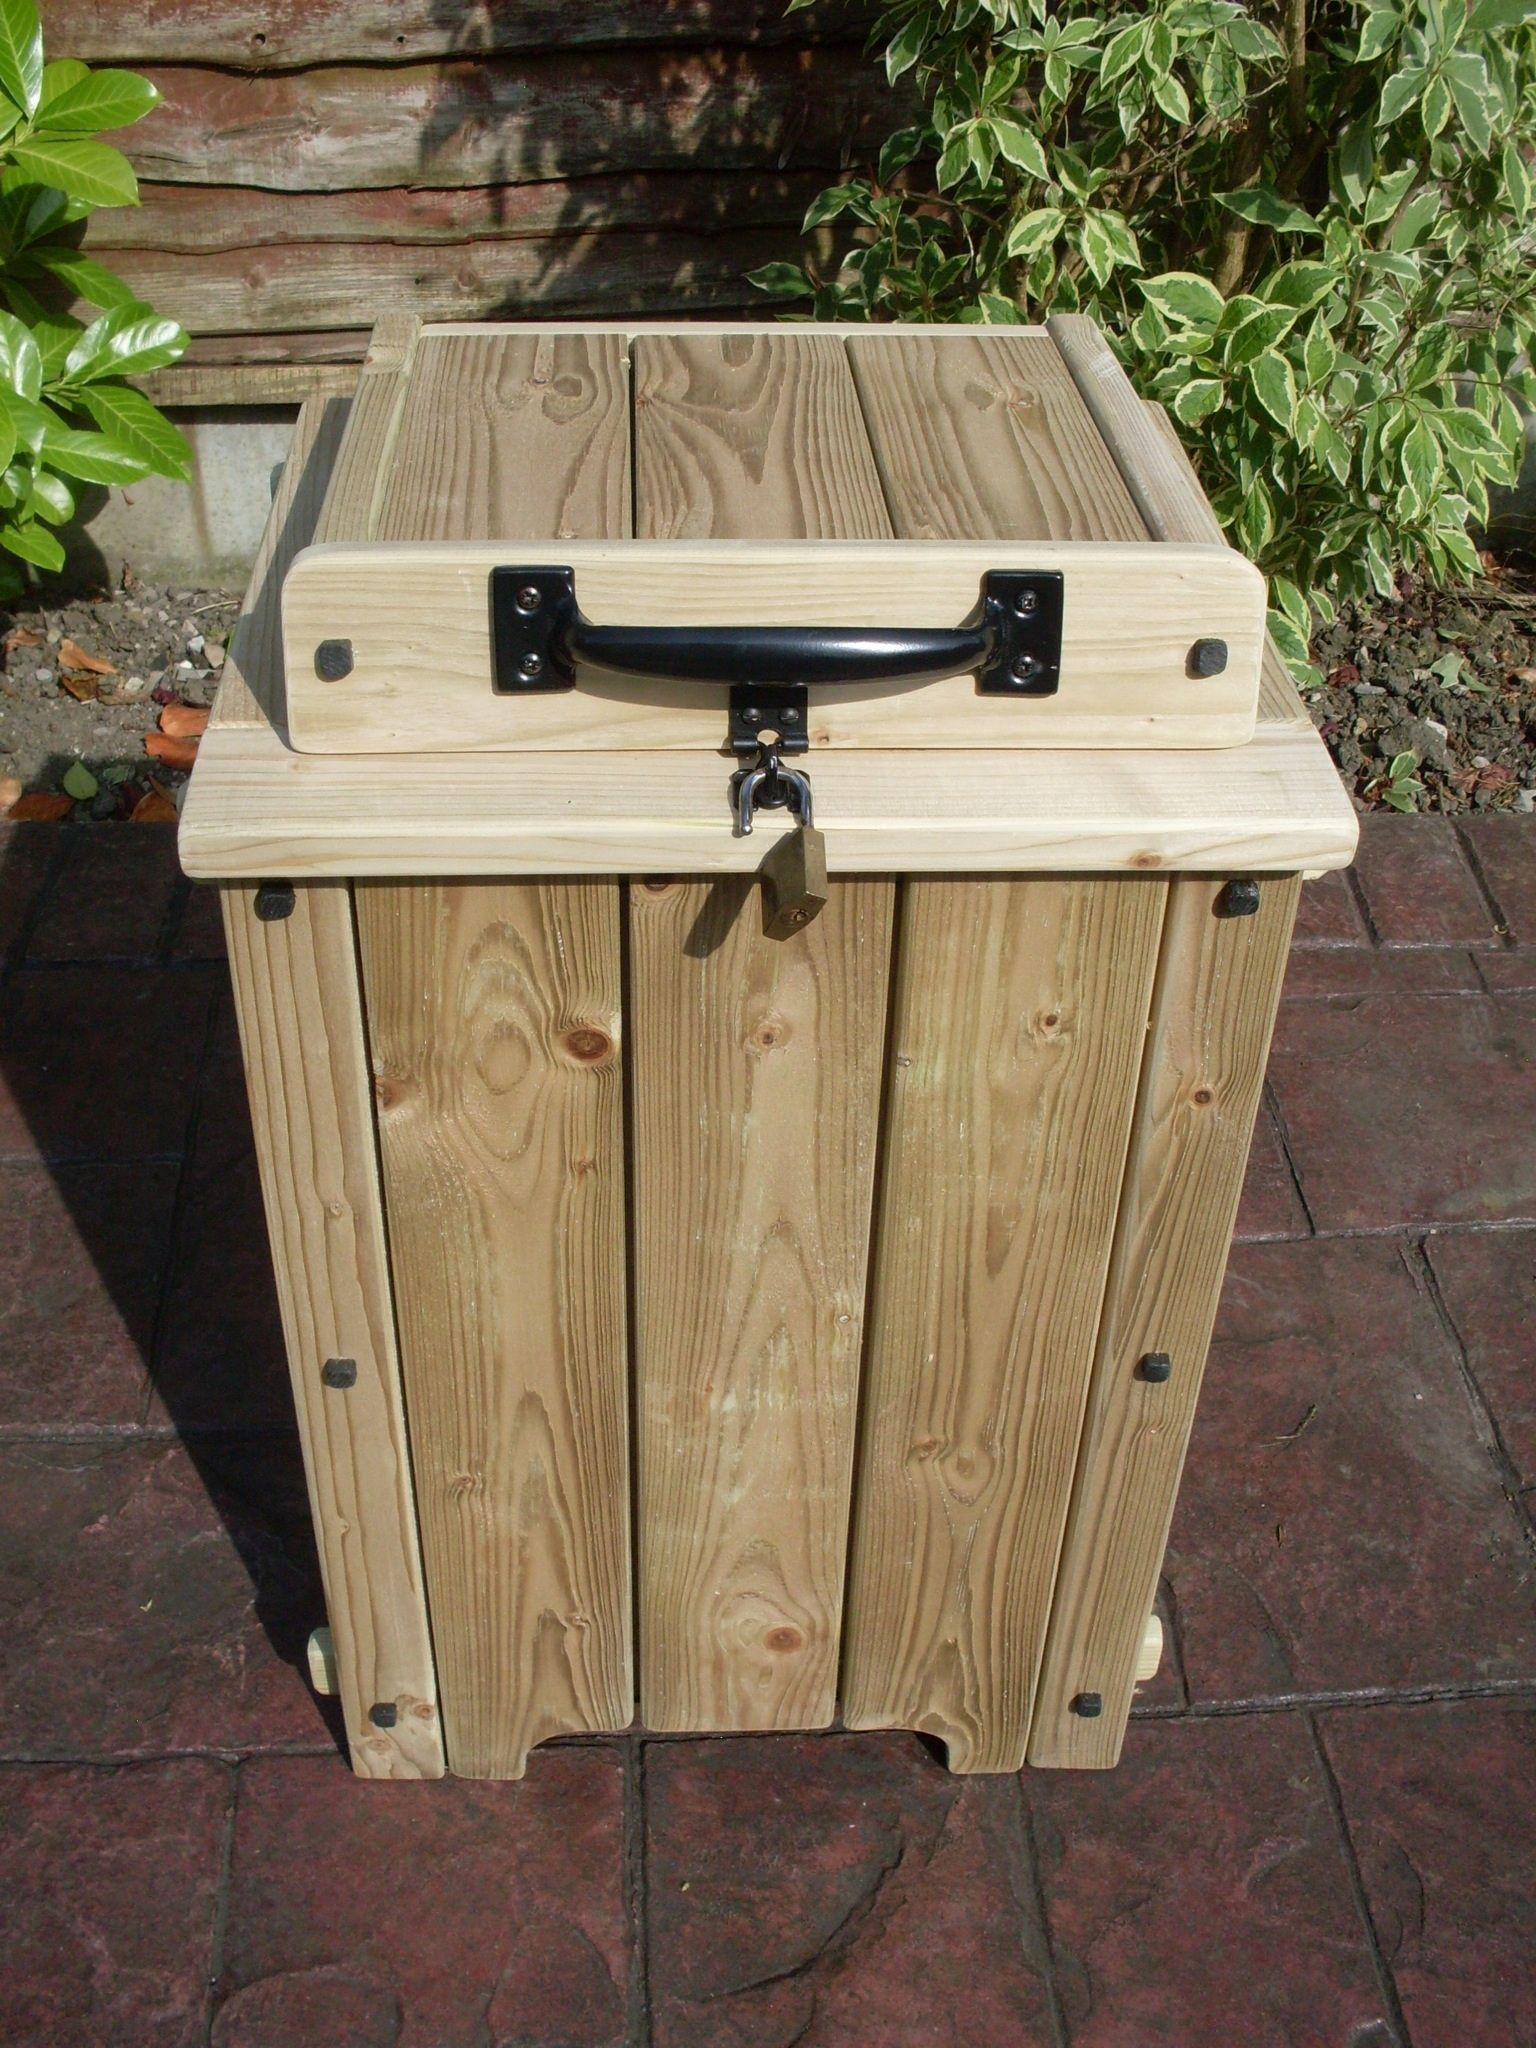 Captivating KH Garden Furniture Sturdy Wooden Drop Box Made